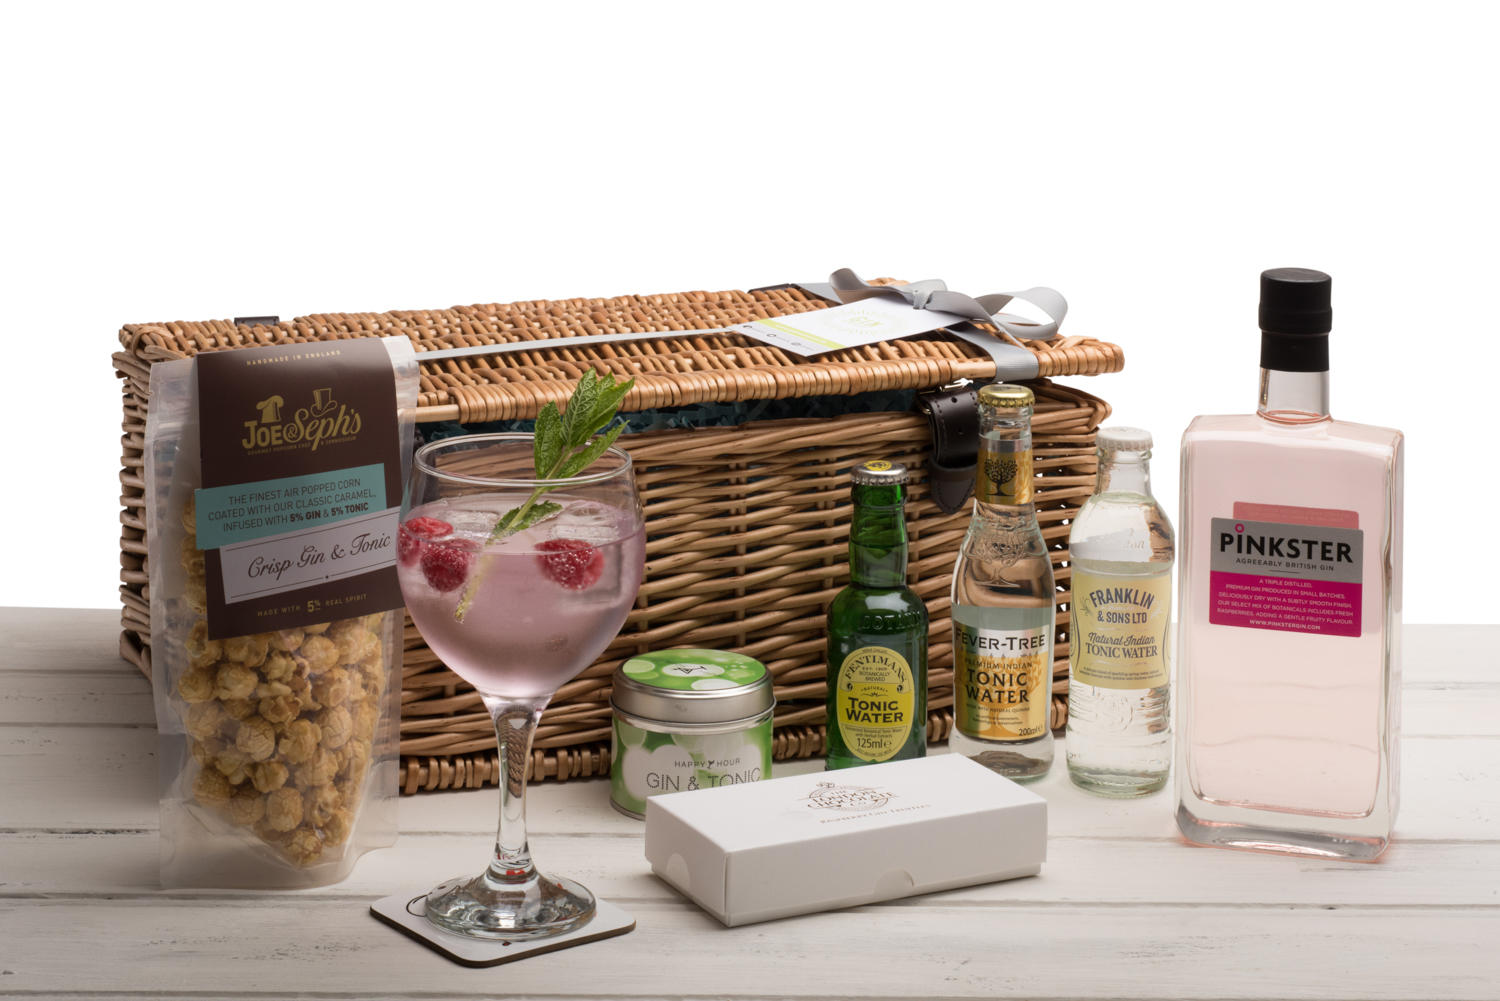 Pinkster Gin Hamper (Wicker Basket)